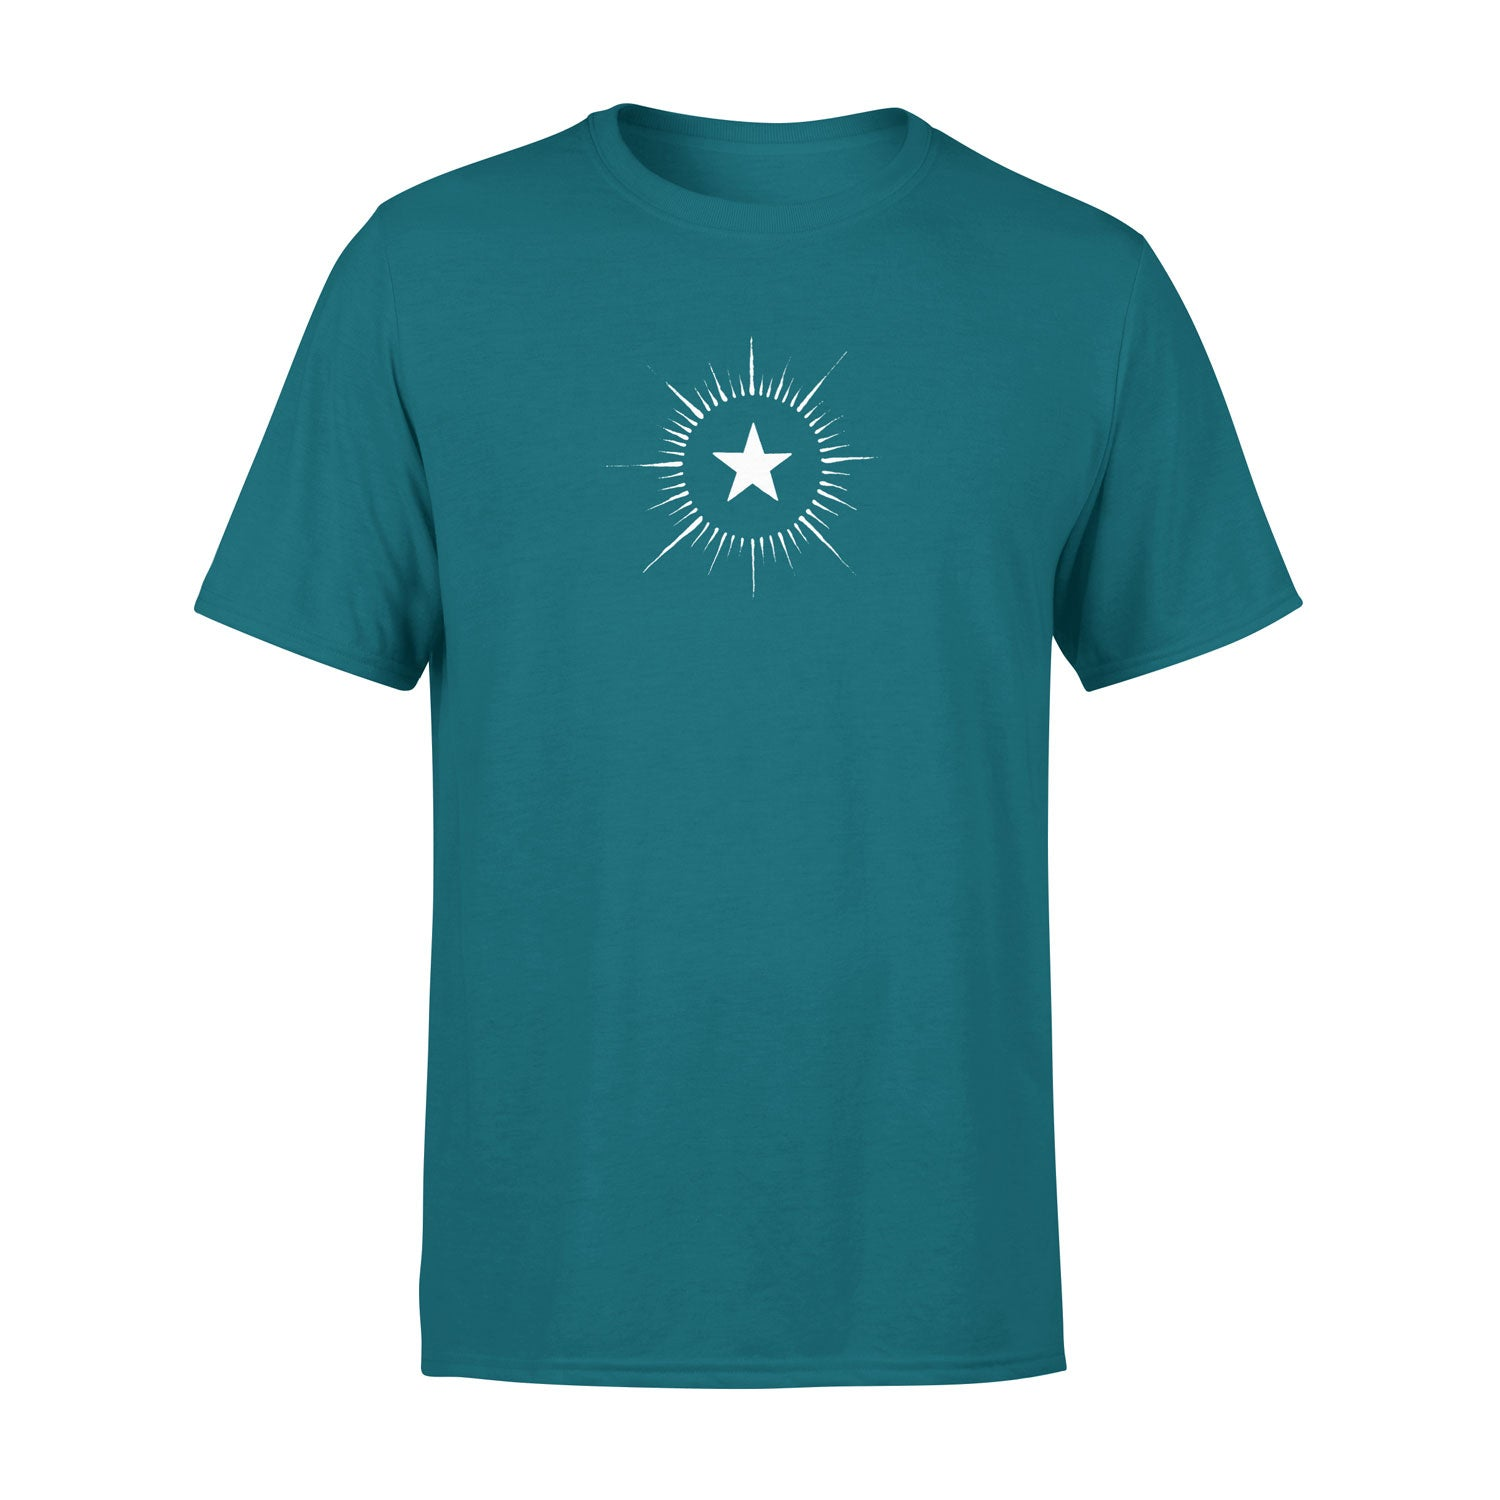 men's teal t shirt with vintage star design